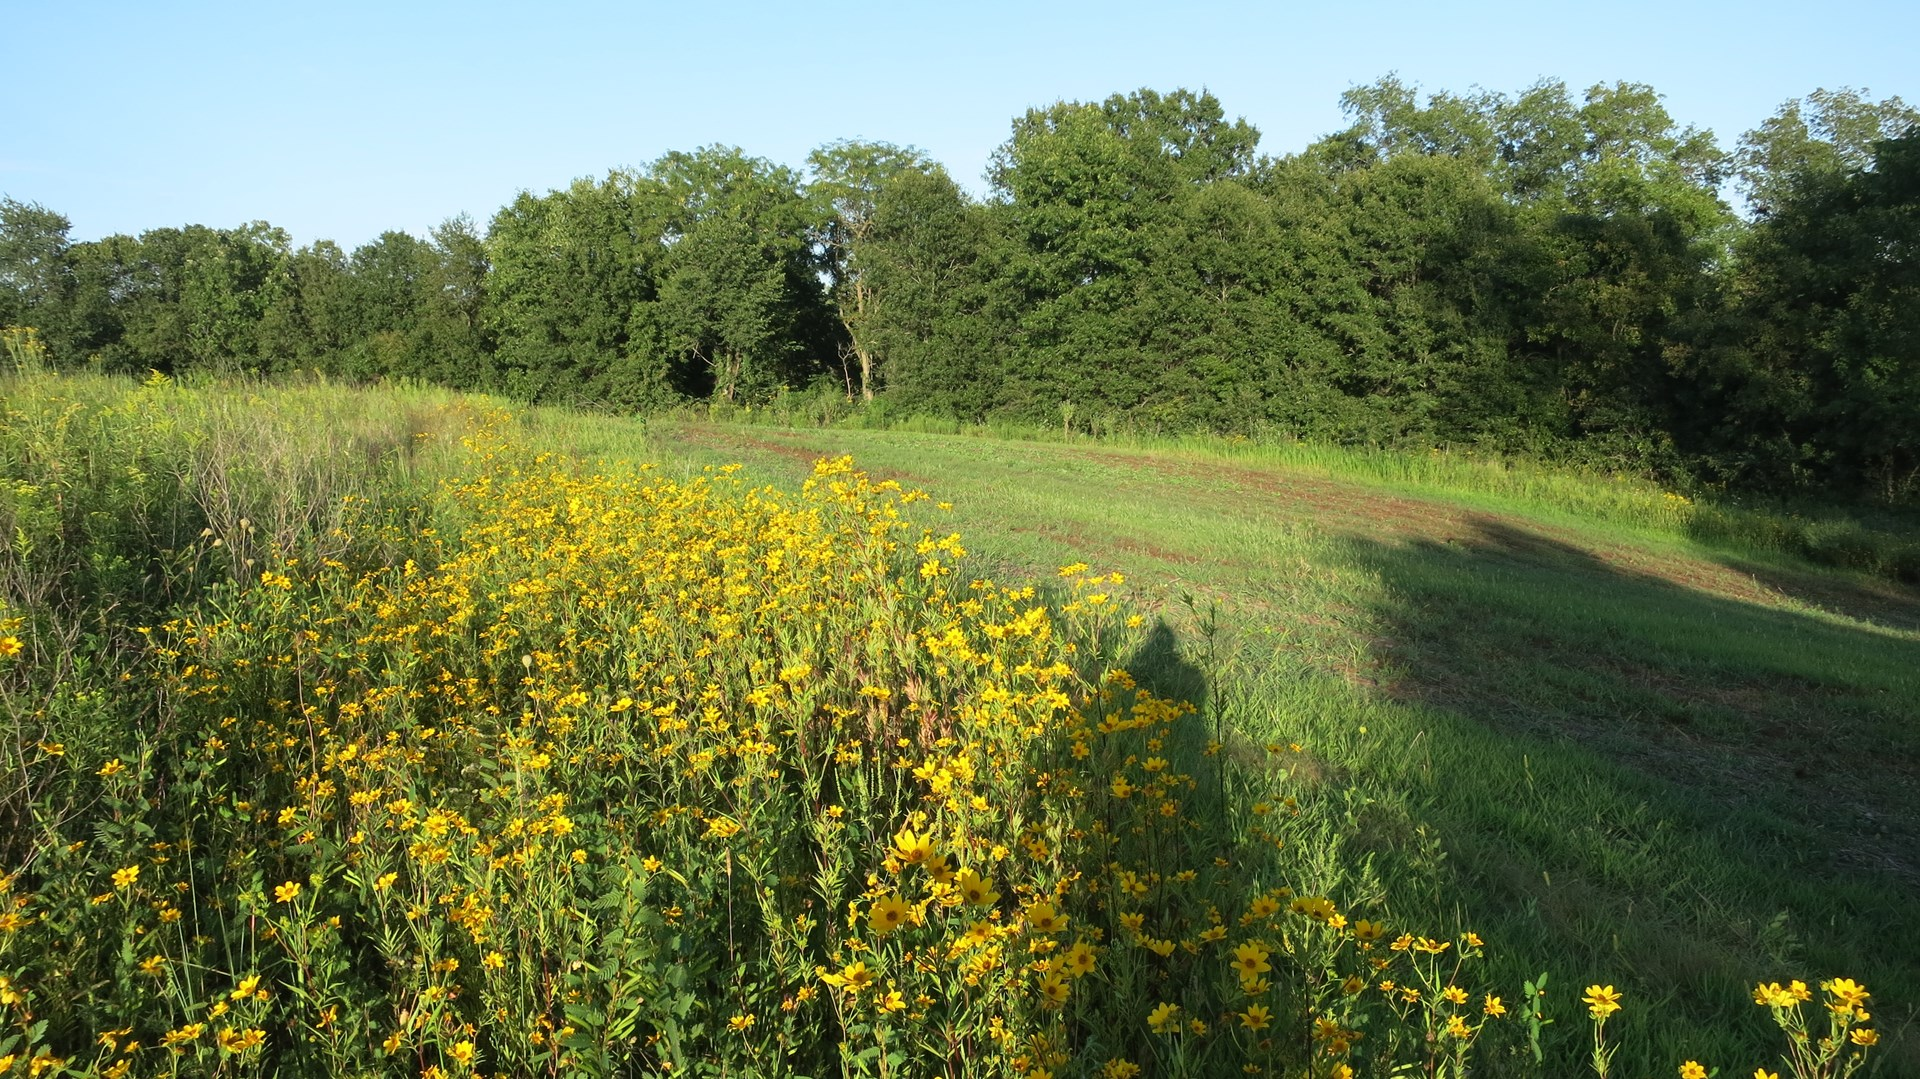 For Sale 90 Acres m/l Hunting Tract